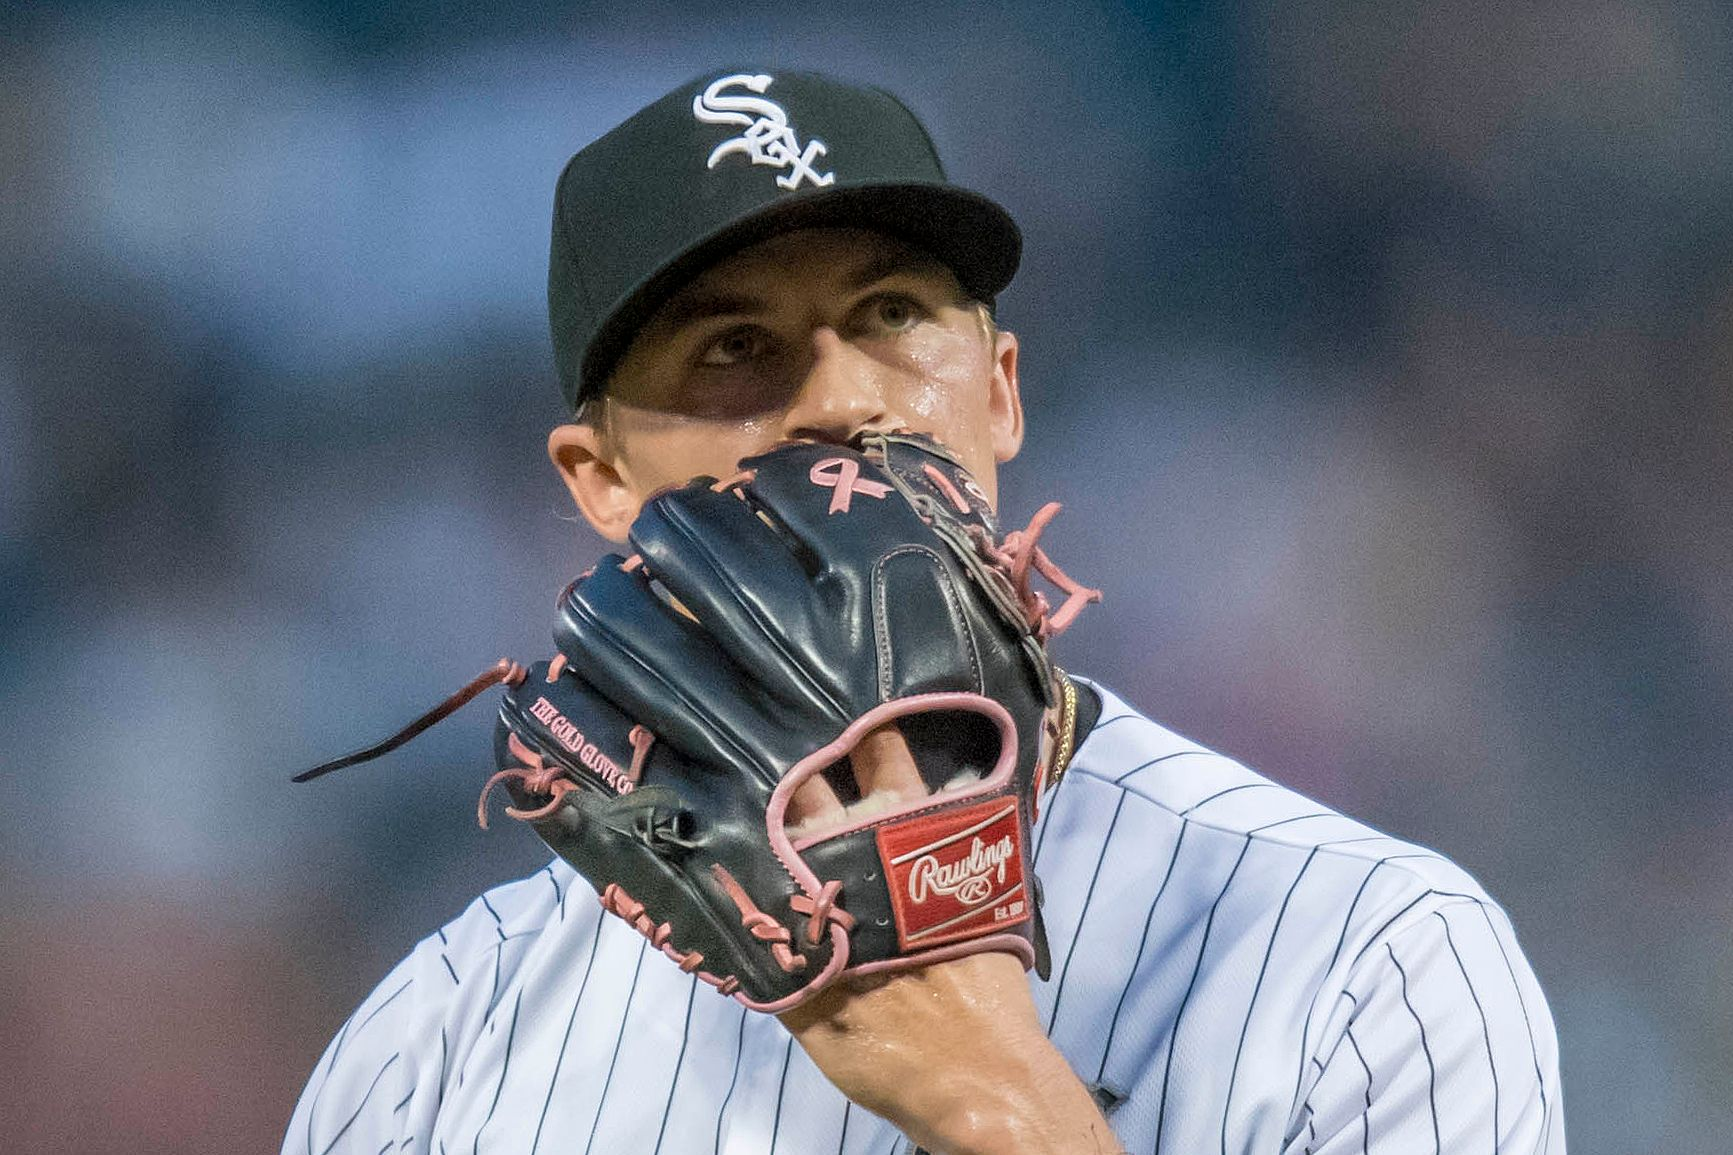 White Sox top pitching prospect likely needs Tommy John surgery